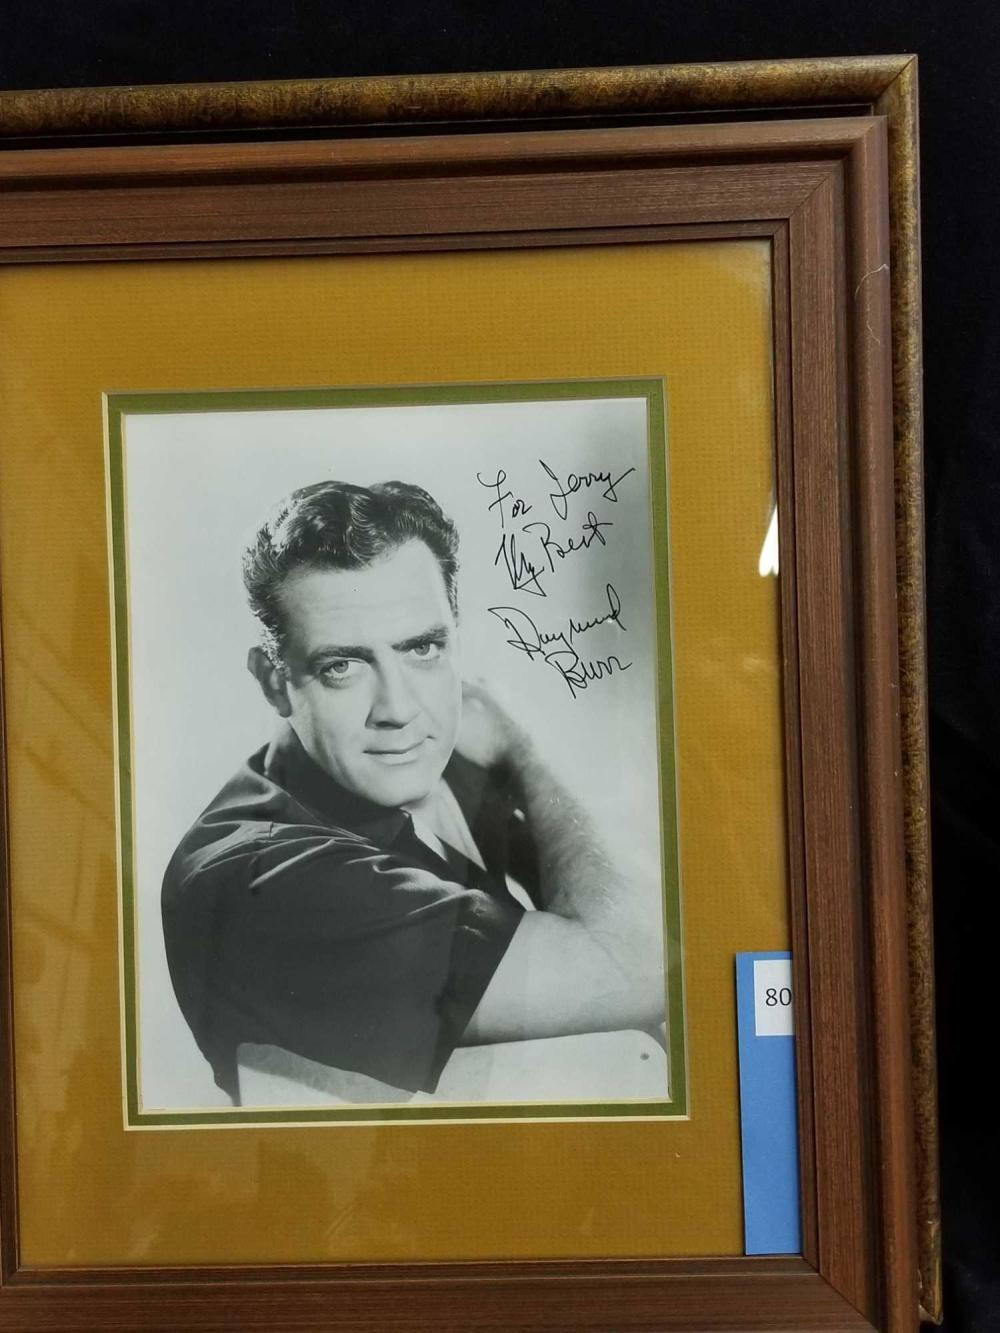 RAYMOND BURR BLACK & WHITE SIGNED PUBLICITY PHOTO